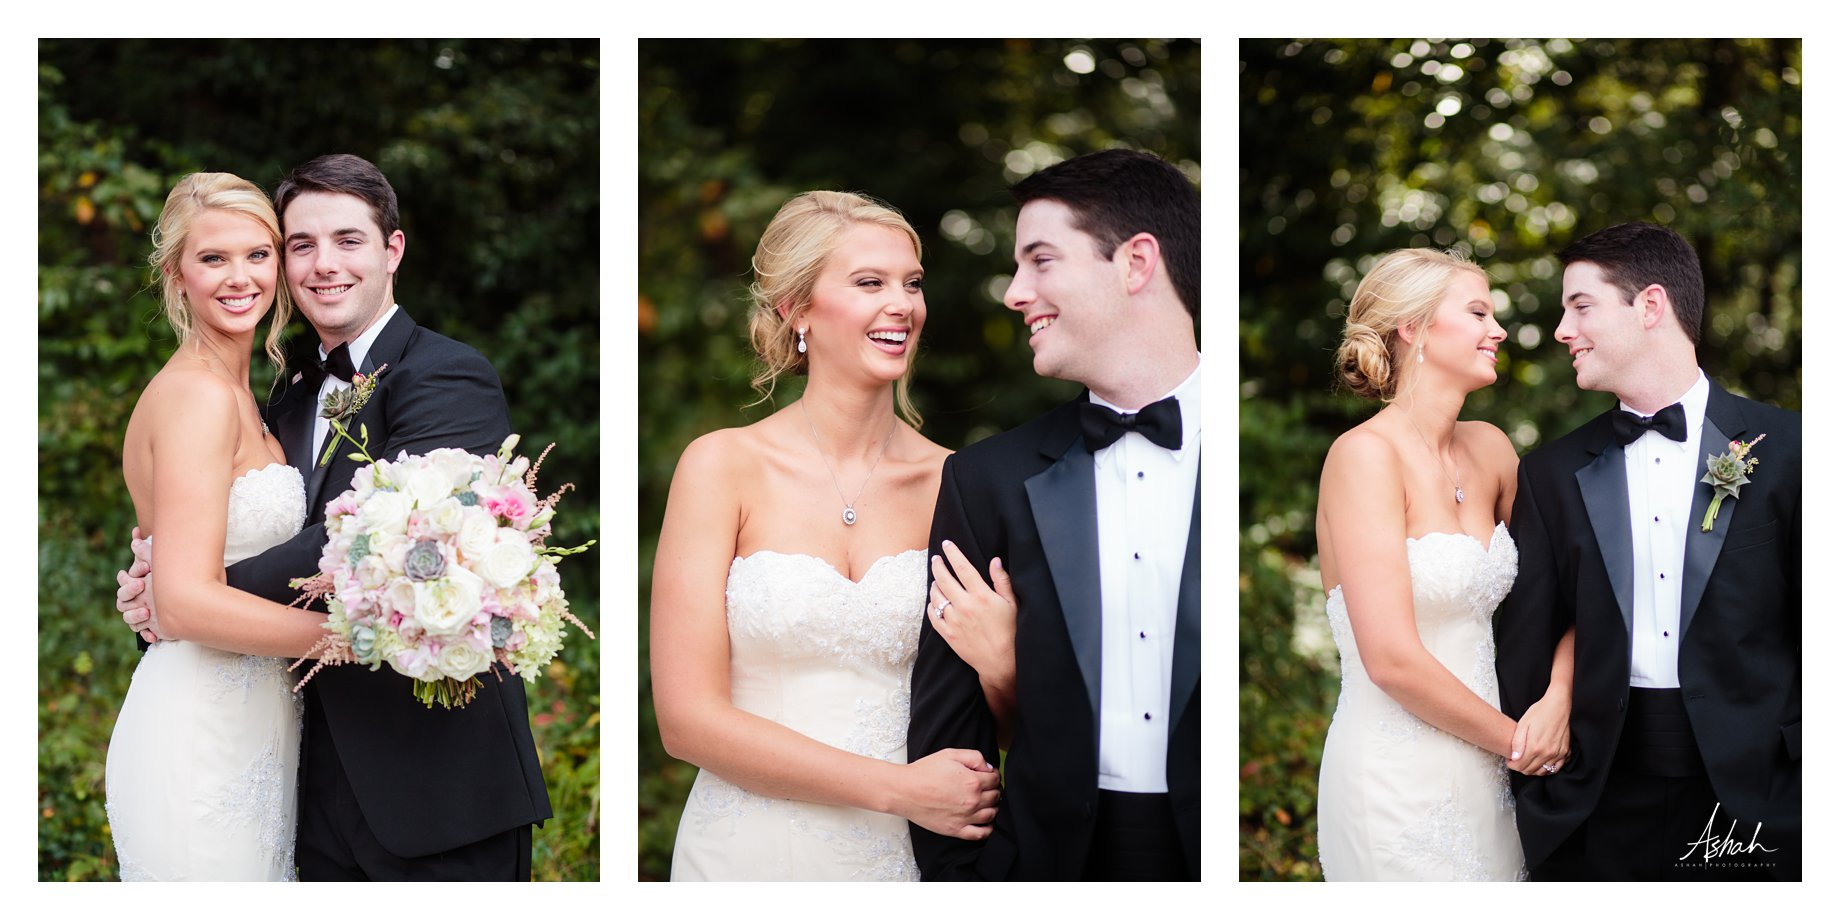 Love in the Garden - The Couple  - Macon Wedding Photographer